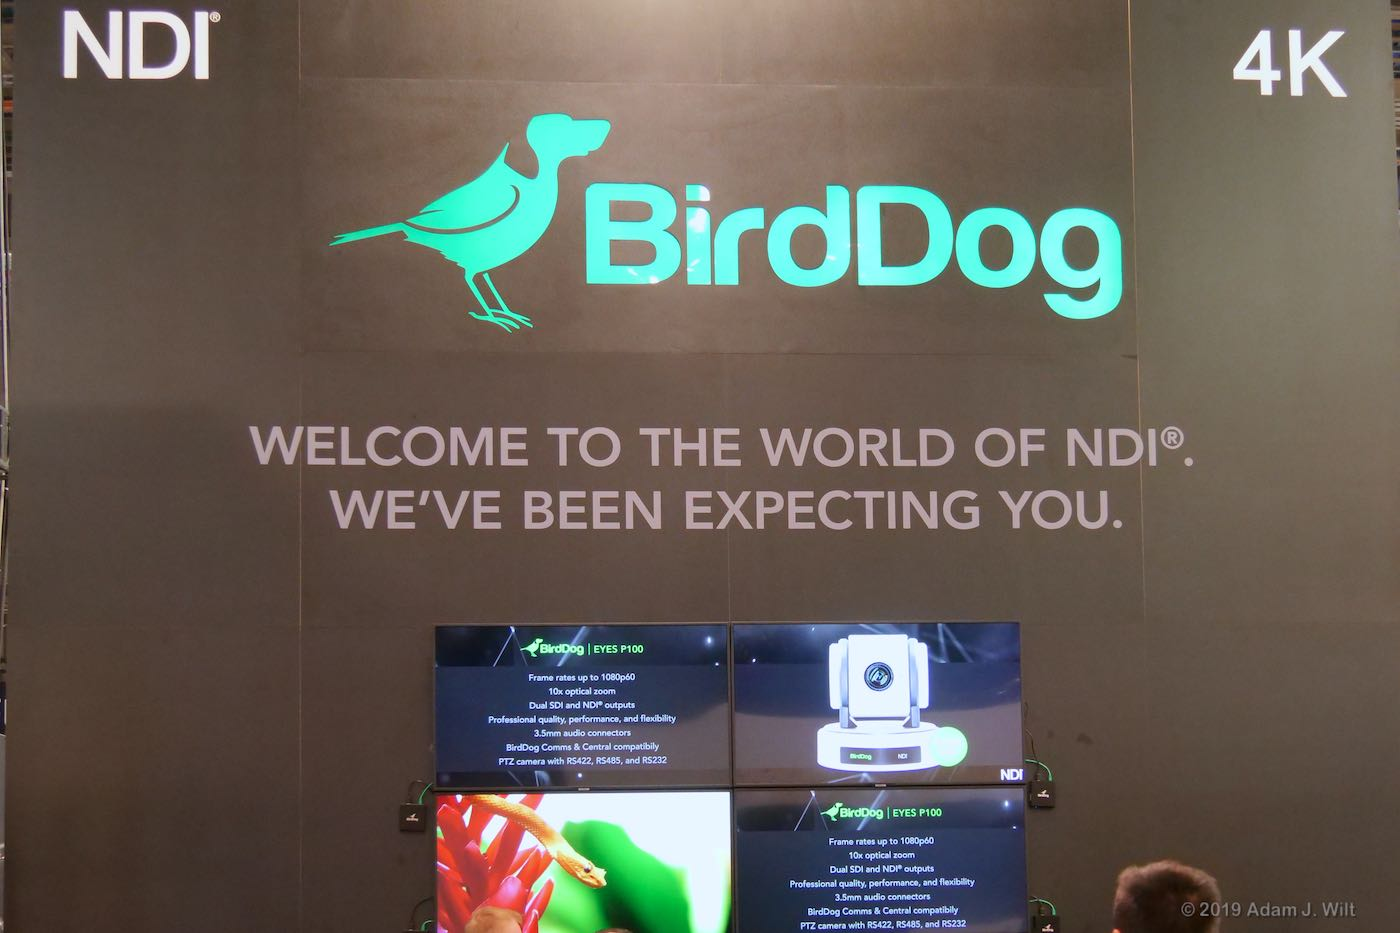 In the early days of DV, we had DV converter boxes from Sony, Miranda, and Convergent Design. Today, BirdDog is providing NDI converter boxes.